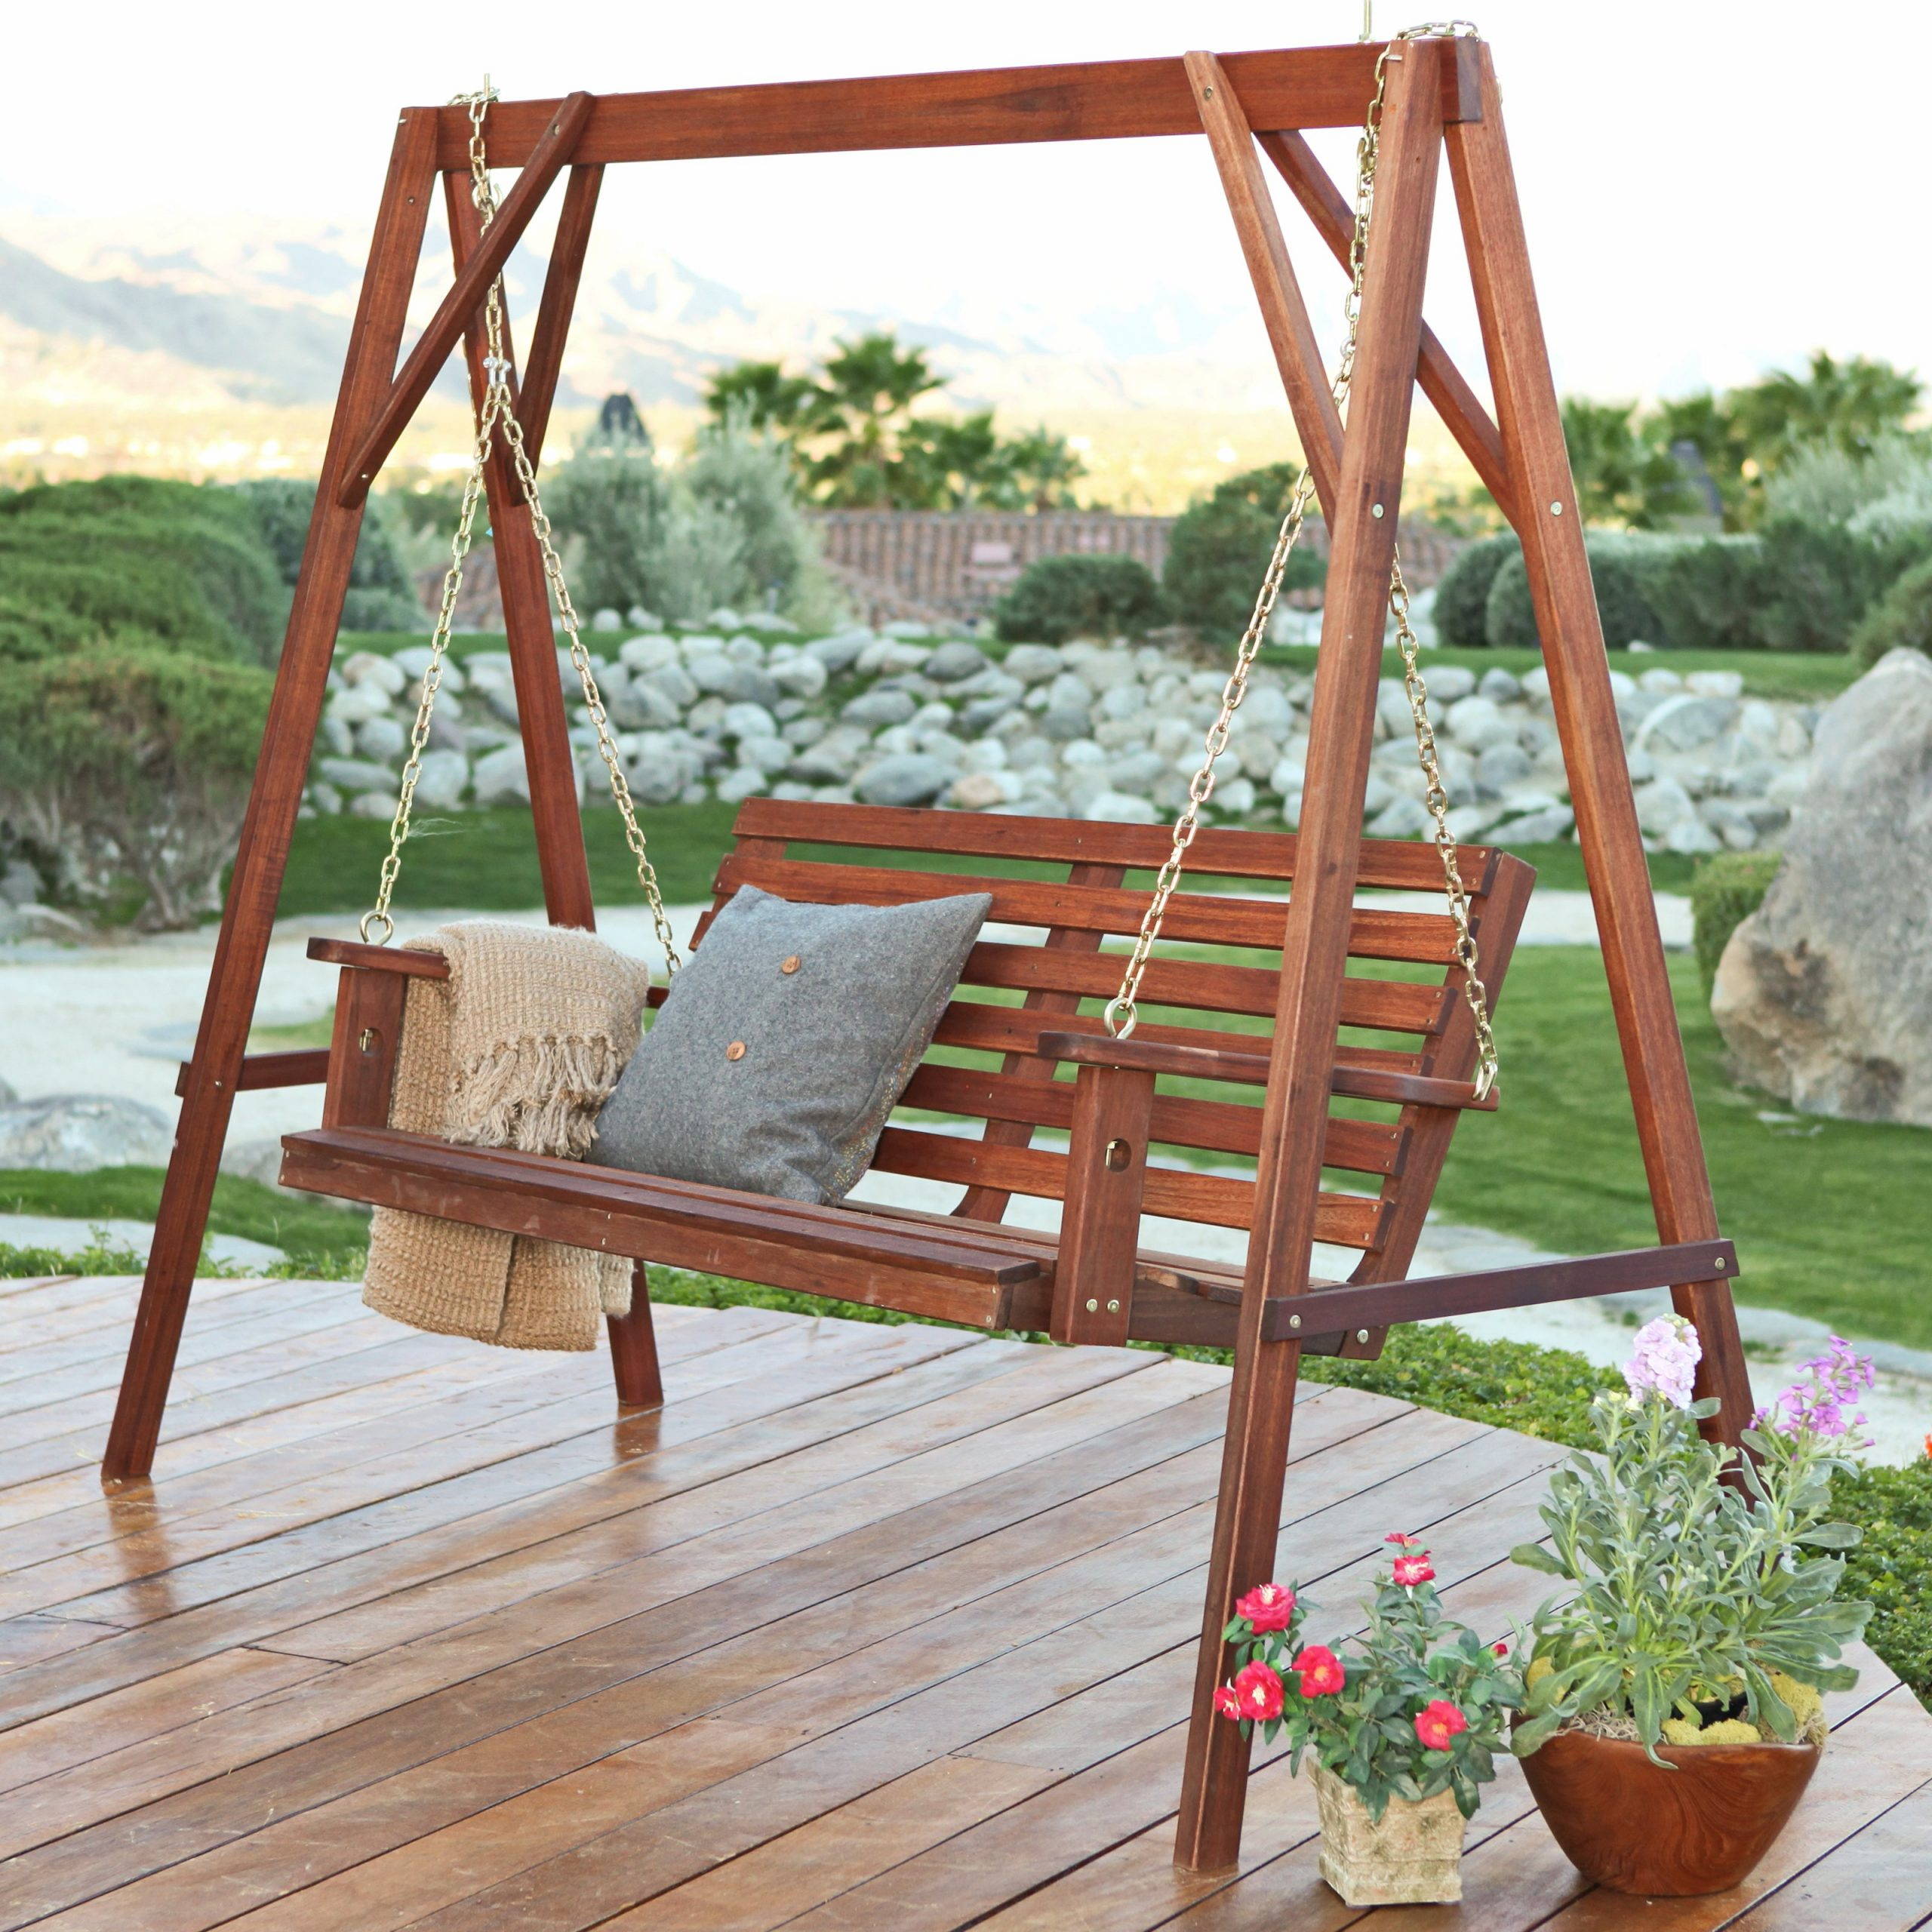 Hardwood Hanging Porch Swings With Stand Regarding 2020 Belham Living Richmond Straight Back Porch Swing & Stand Set – Walmart (View 5 of 25)